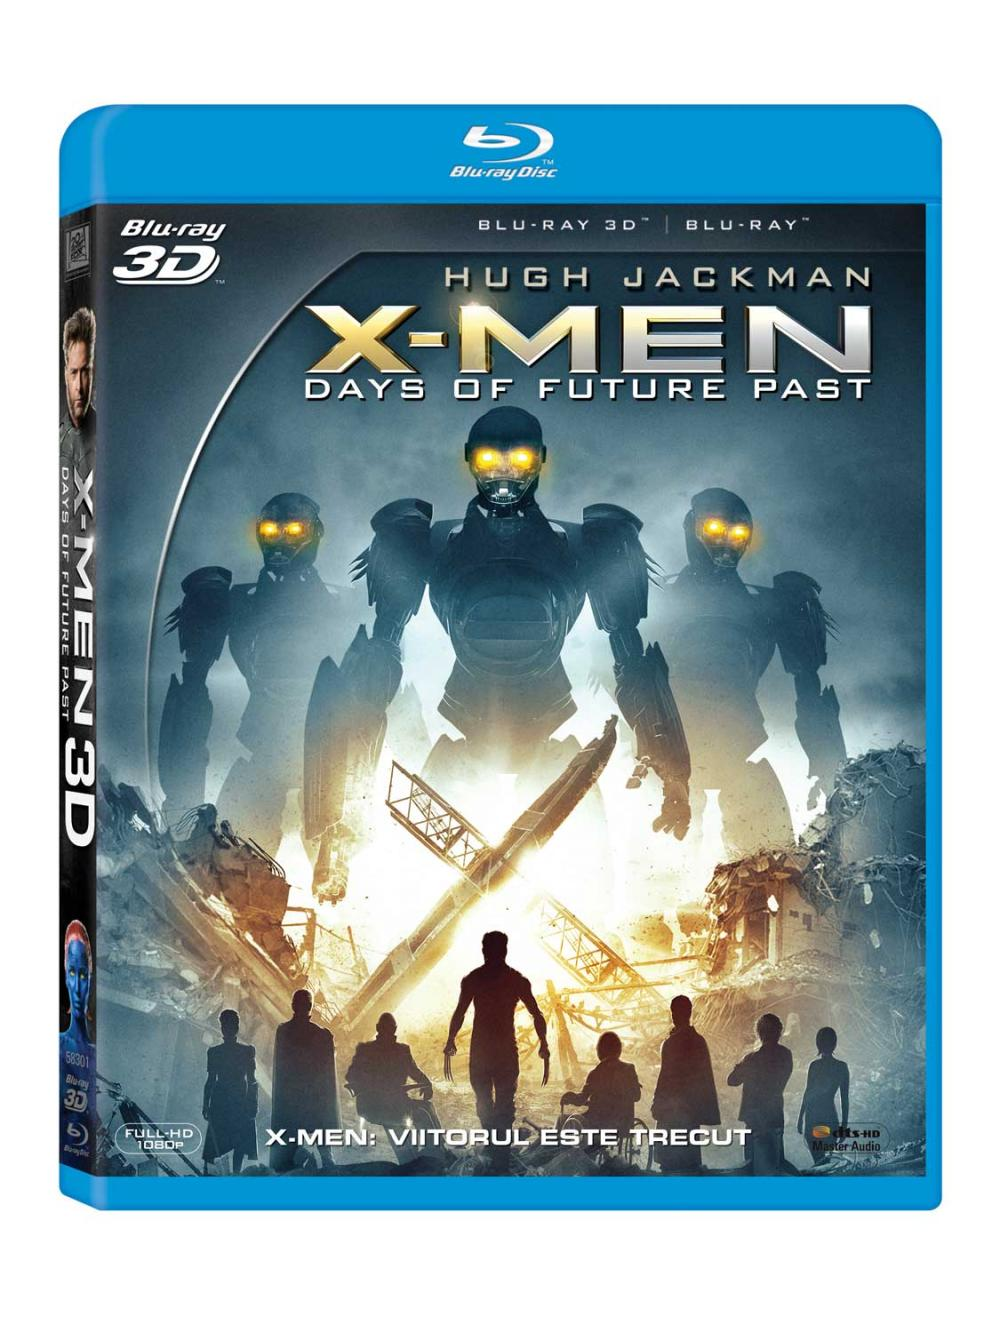 BD: X-MEN: DAYS OF FUTURE PAST - X-MEN: VIITORUL ESTE TRECUT